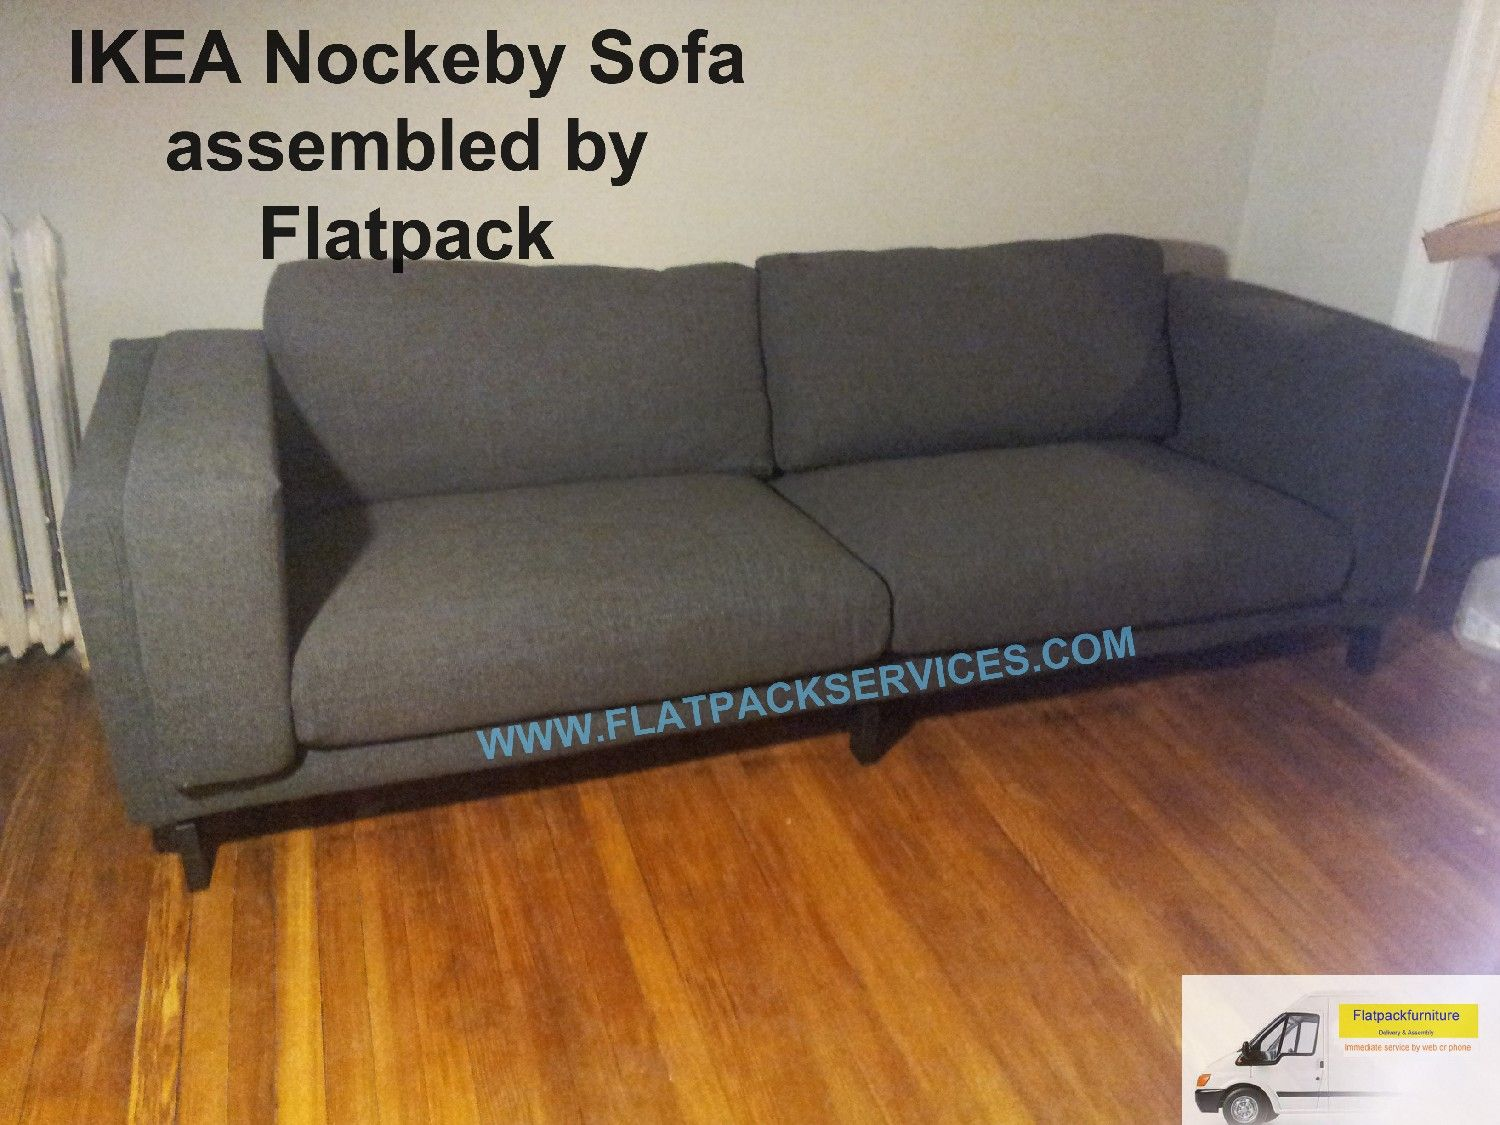 Ikea Nockeby Sofa Embled By Flatpack Services Www Flatpackservice Best Embly In Washington Dc Yelp